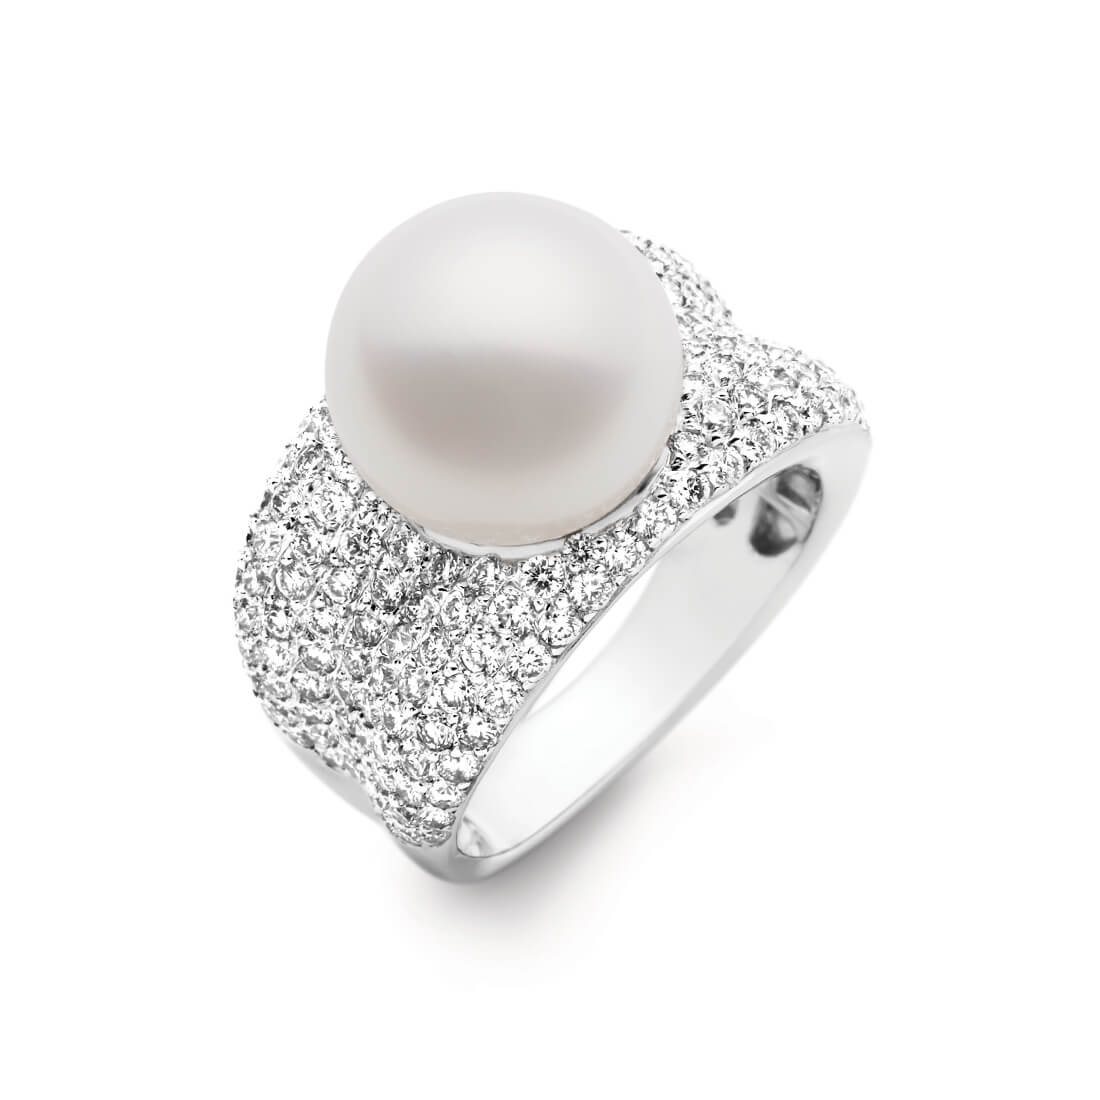 Adored Ring White Diamonds, White Gold